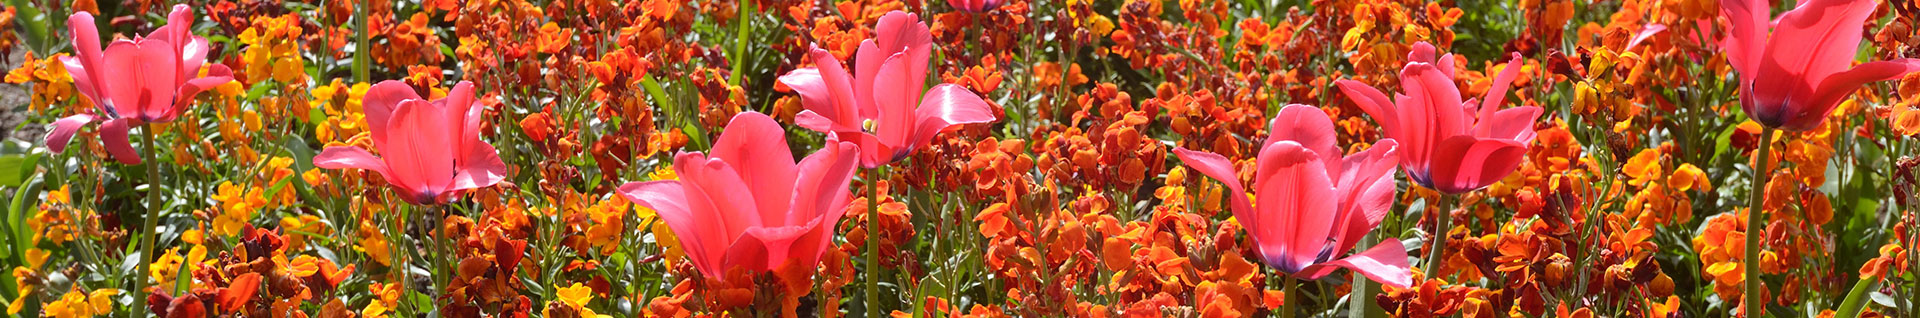 Photo of a flowerbed